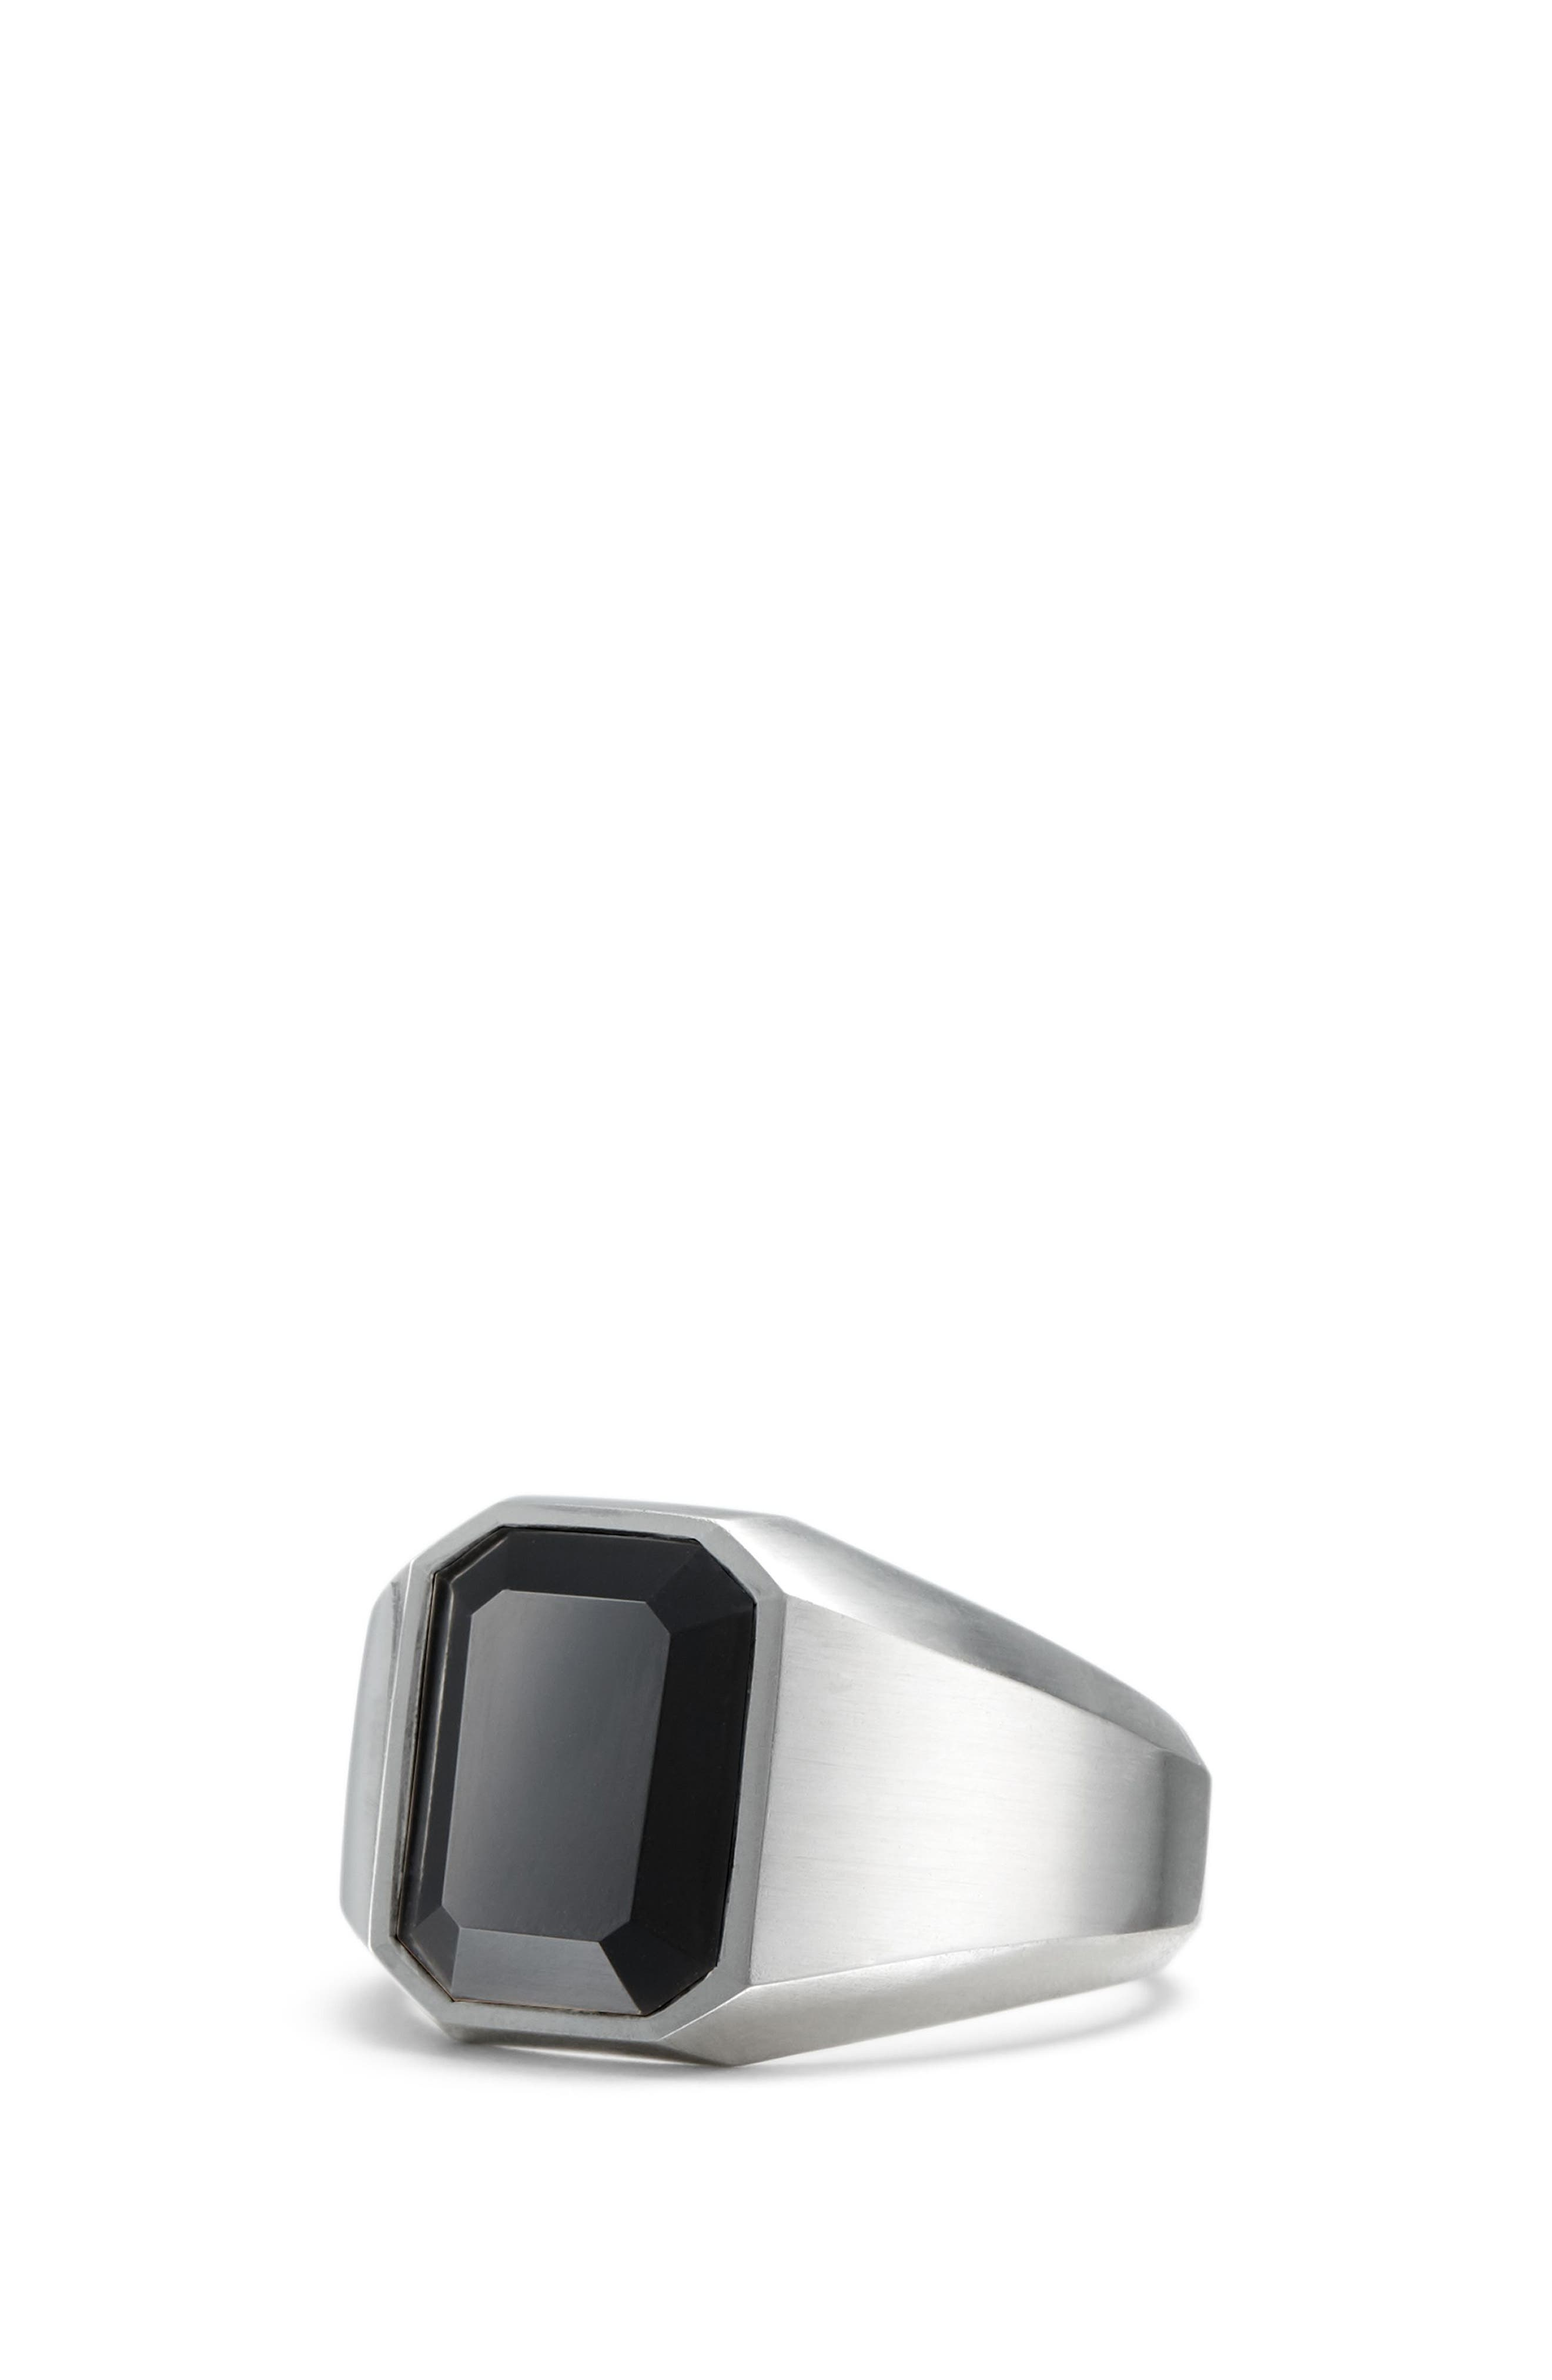 Onyx Signet Ring in Sterling Silver,                         Main,                         color, BLACK ONYX